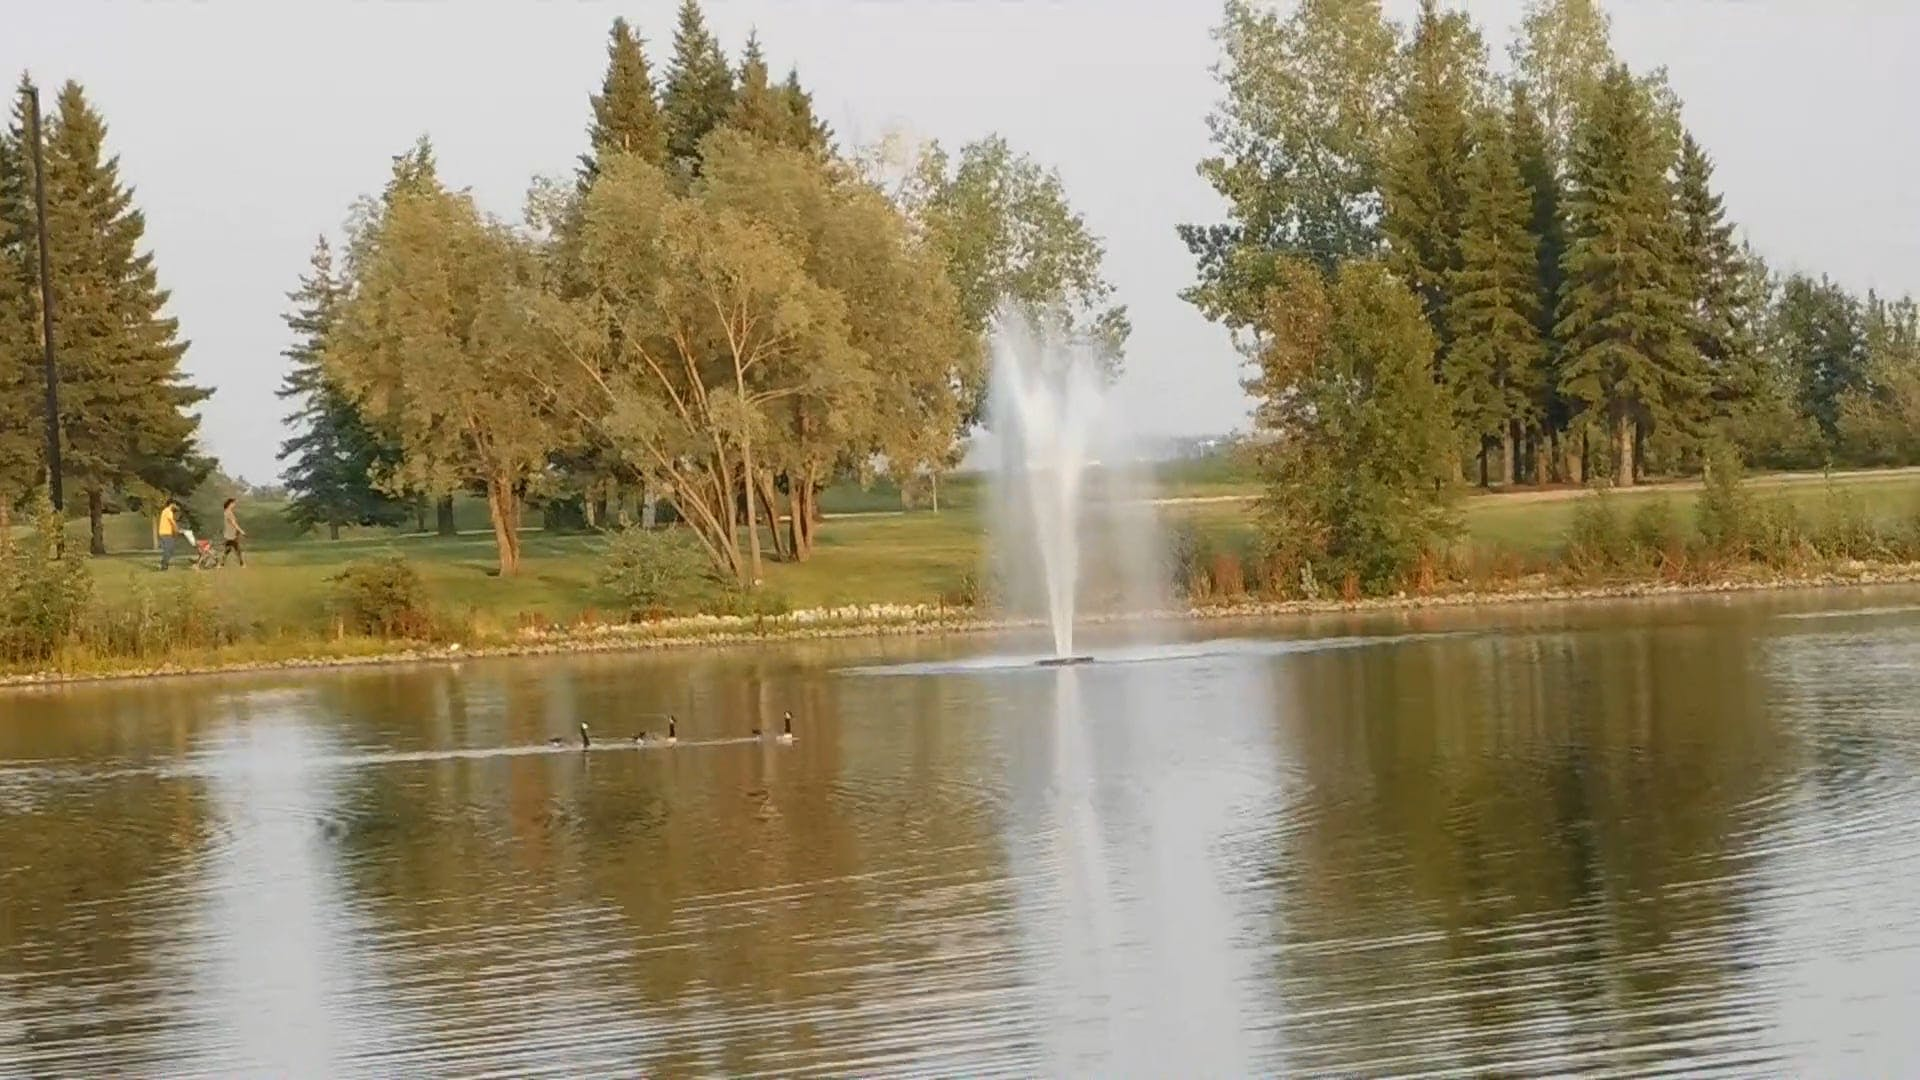 A Lake In The Park With A Fountain